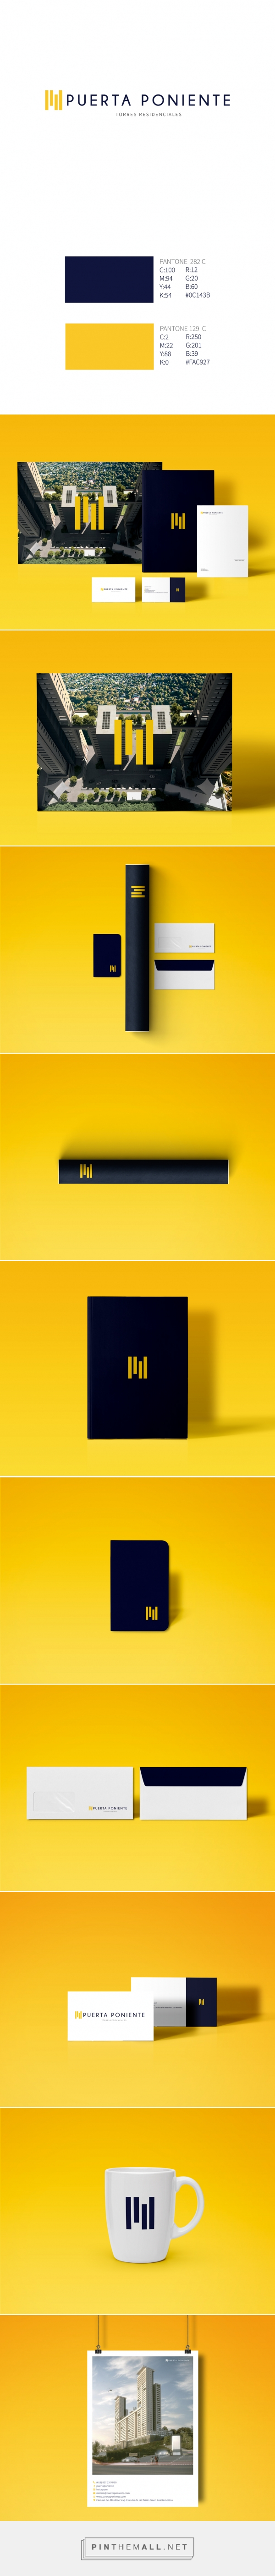 Puerta Poniente on Behance... - a grouped images picture - Pin Them All